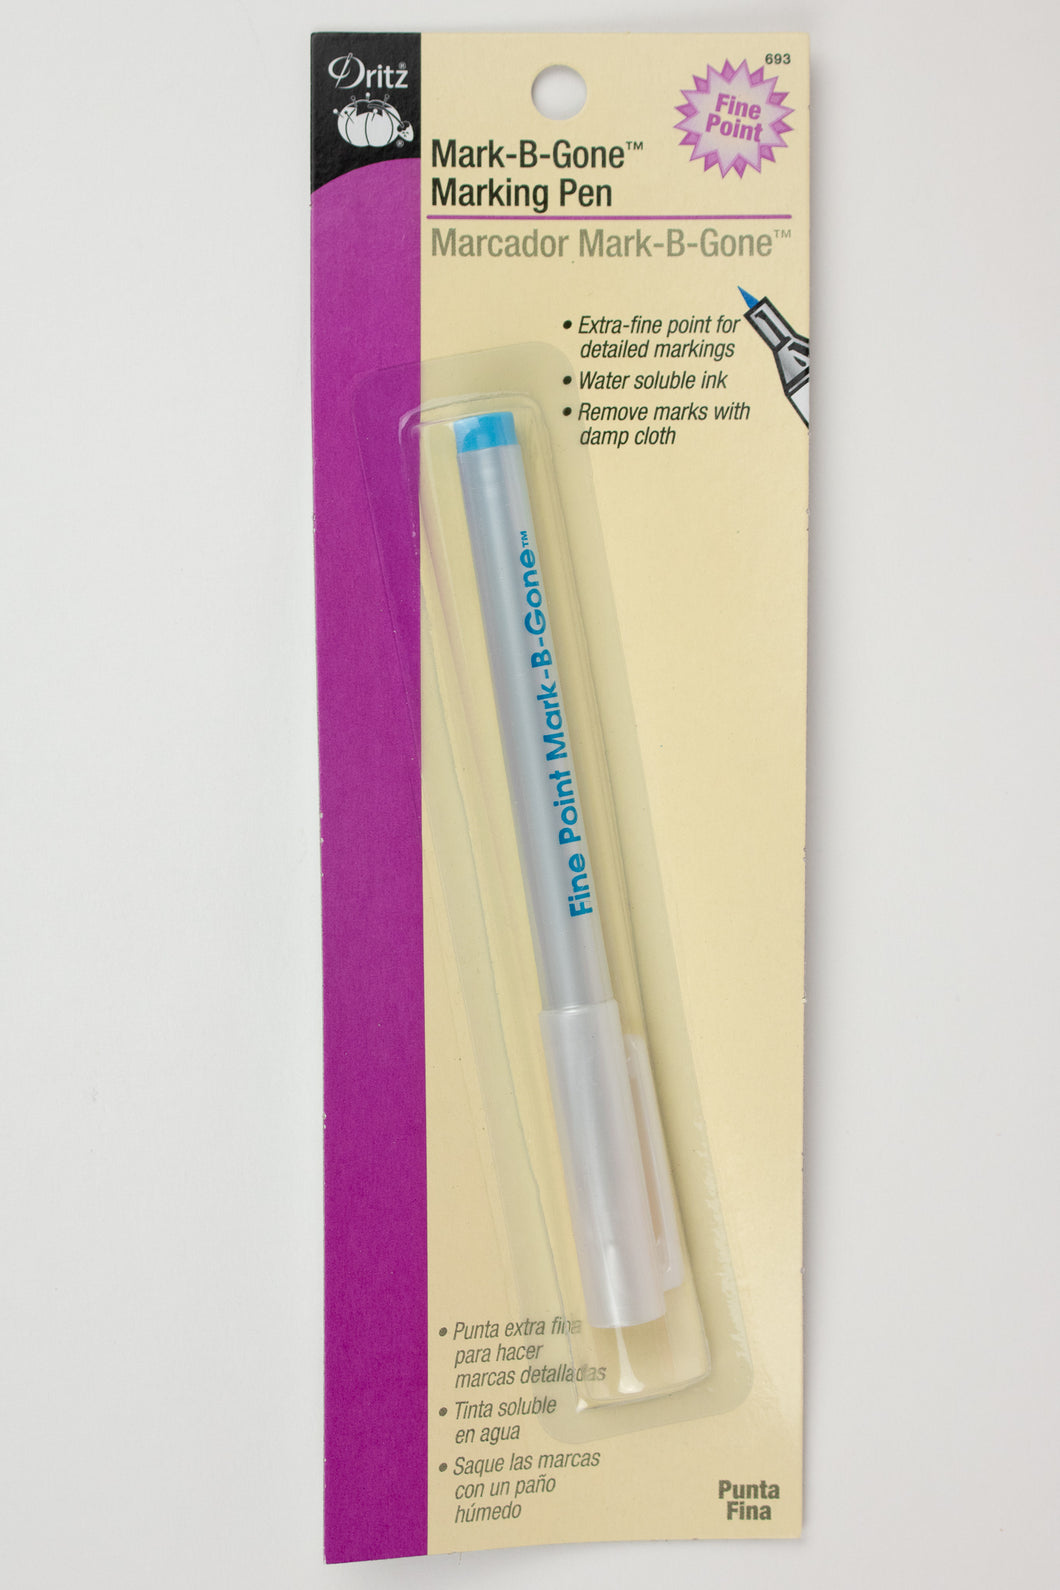 Mark-B-Gone Marking Pen